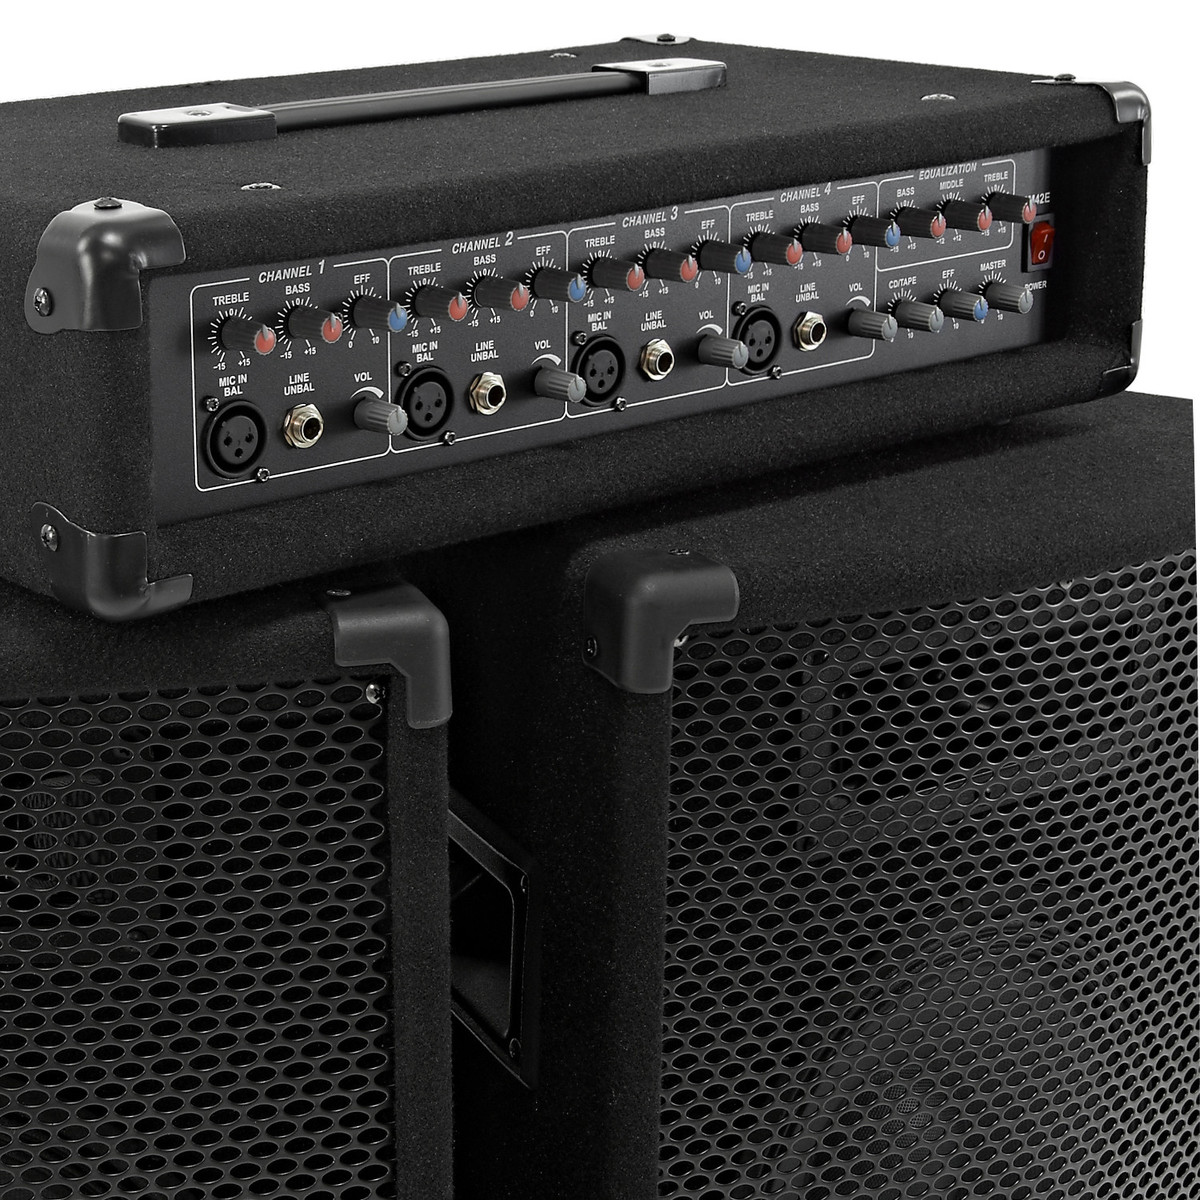 subzero 150w pa system with fx mixer and speakers box opened at gear4music. Black Bedroom Furniture Sets. Home Design Ideas